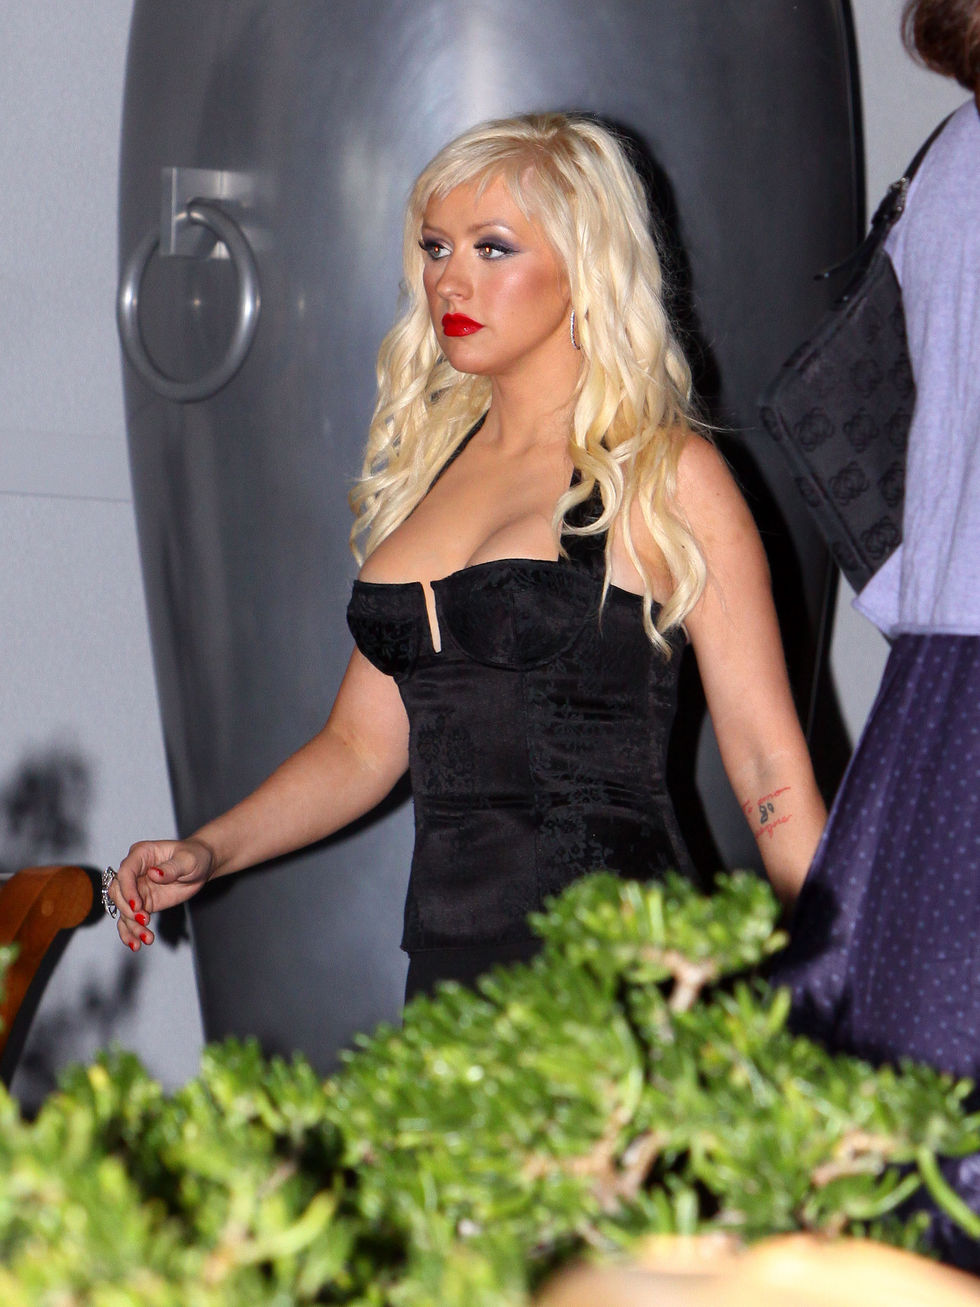 christina-aguilera-cleavage-candids-in-hollywood-01